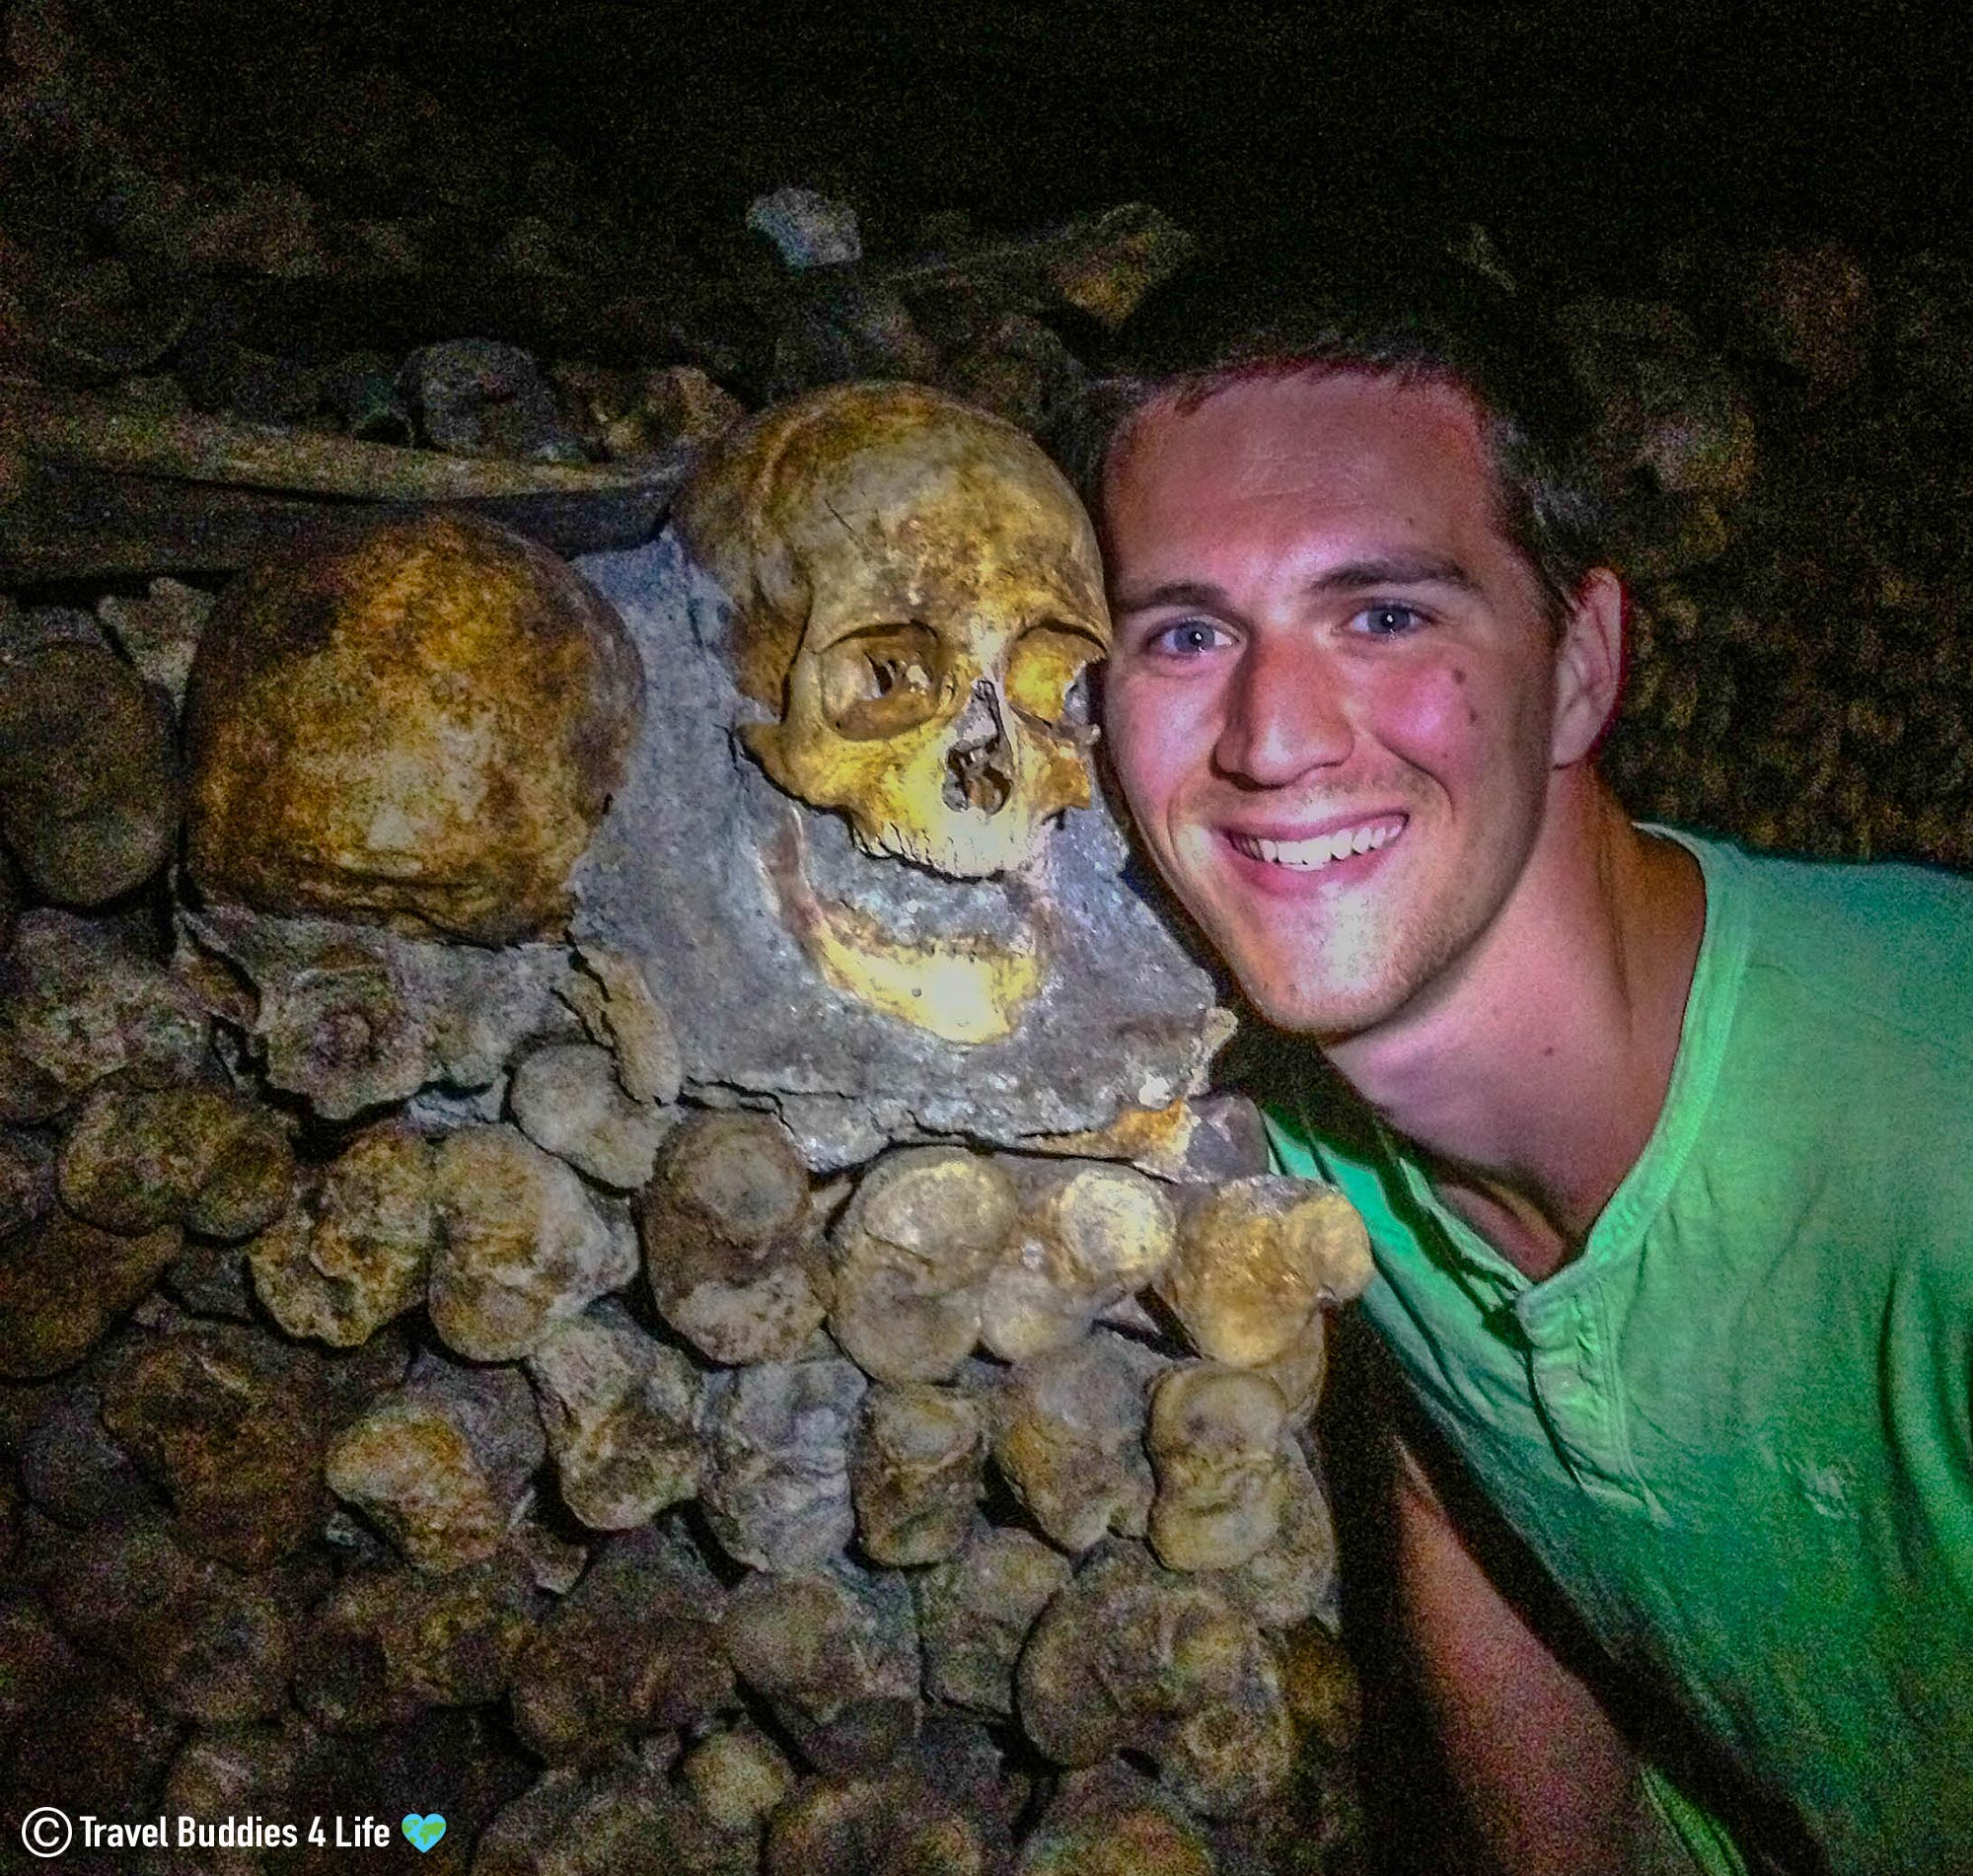 Joey Beside The Discarded Skull In The Crypt Of The Catacombs In Paris, France